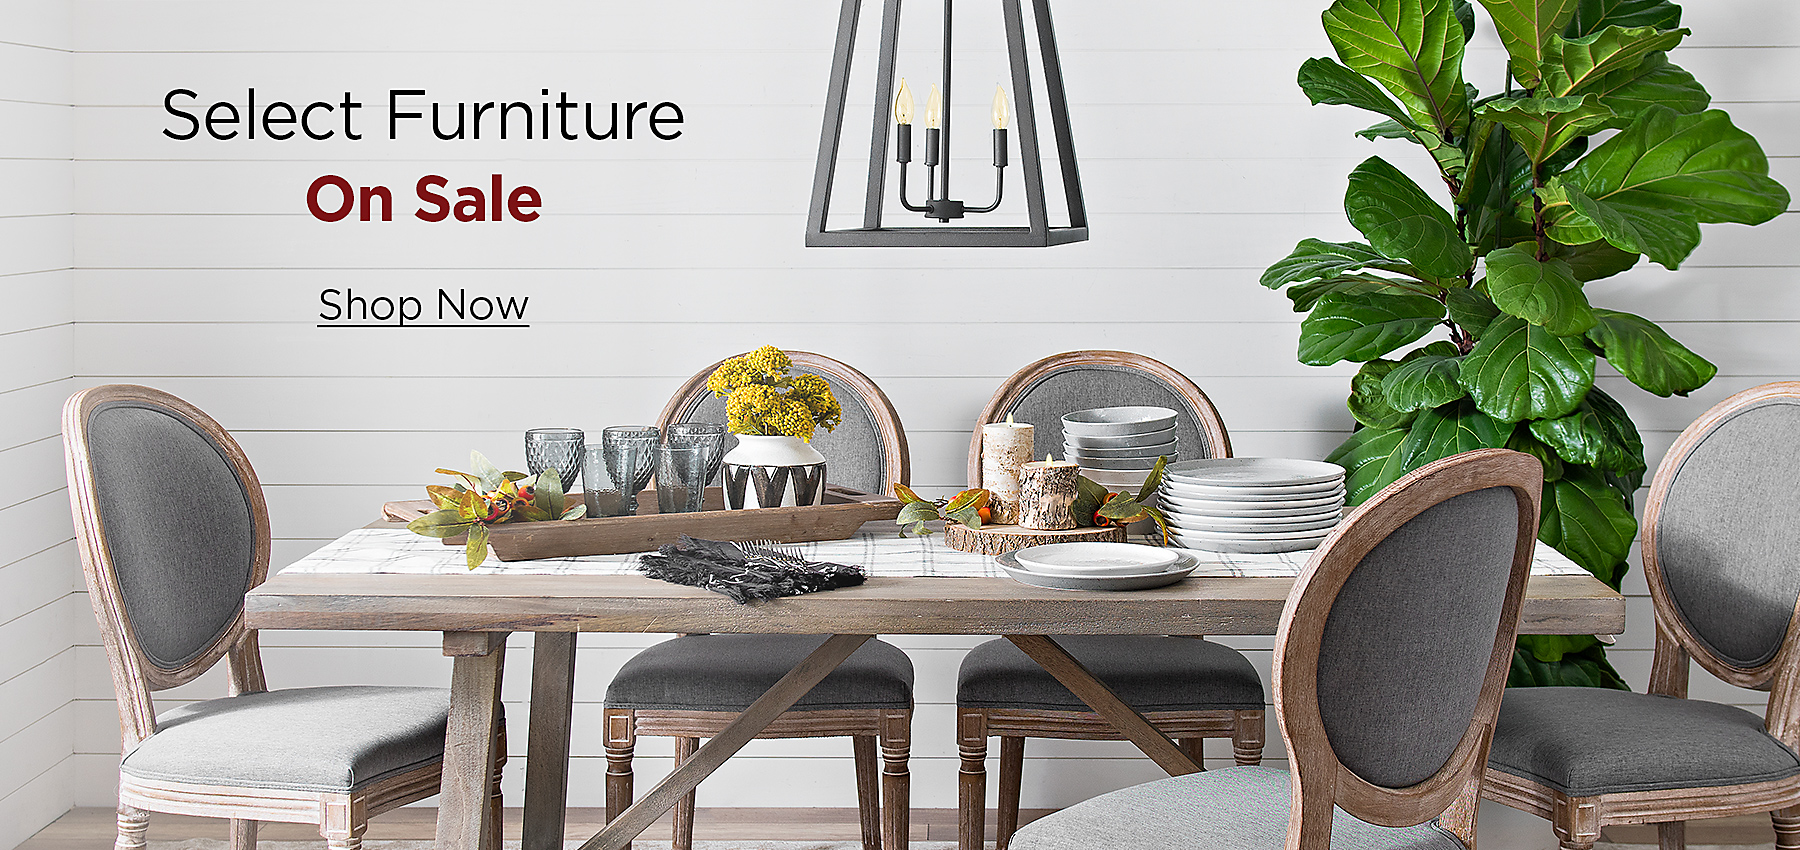 Select Furniture On Sale Now